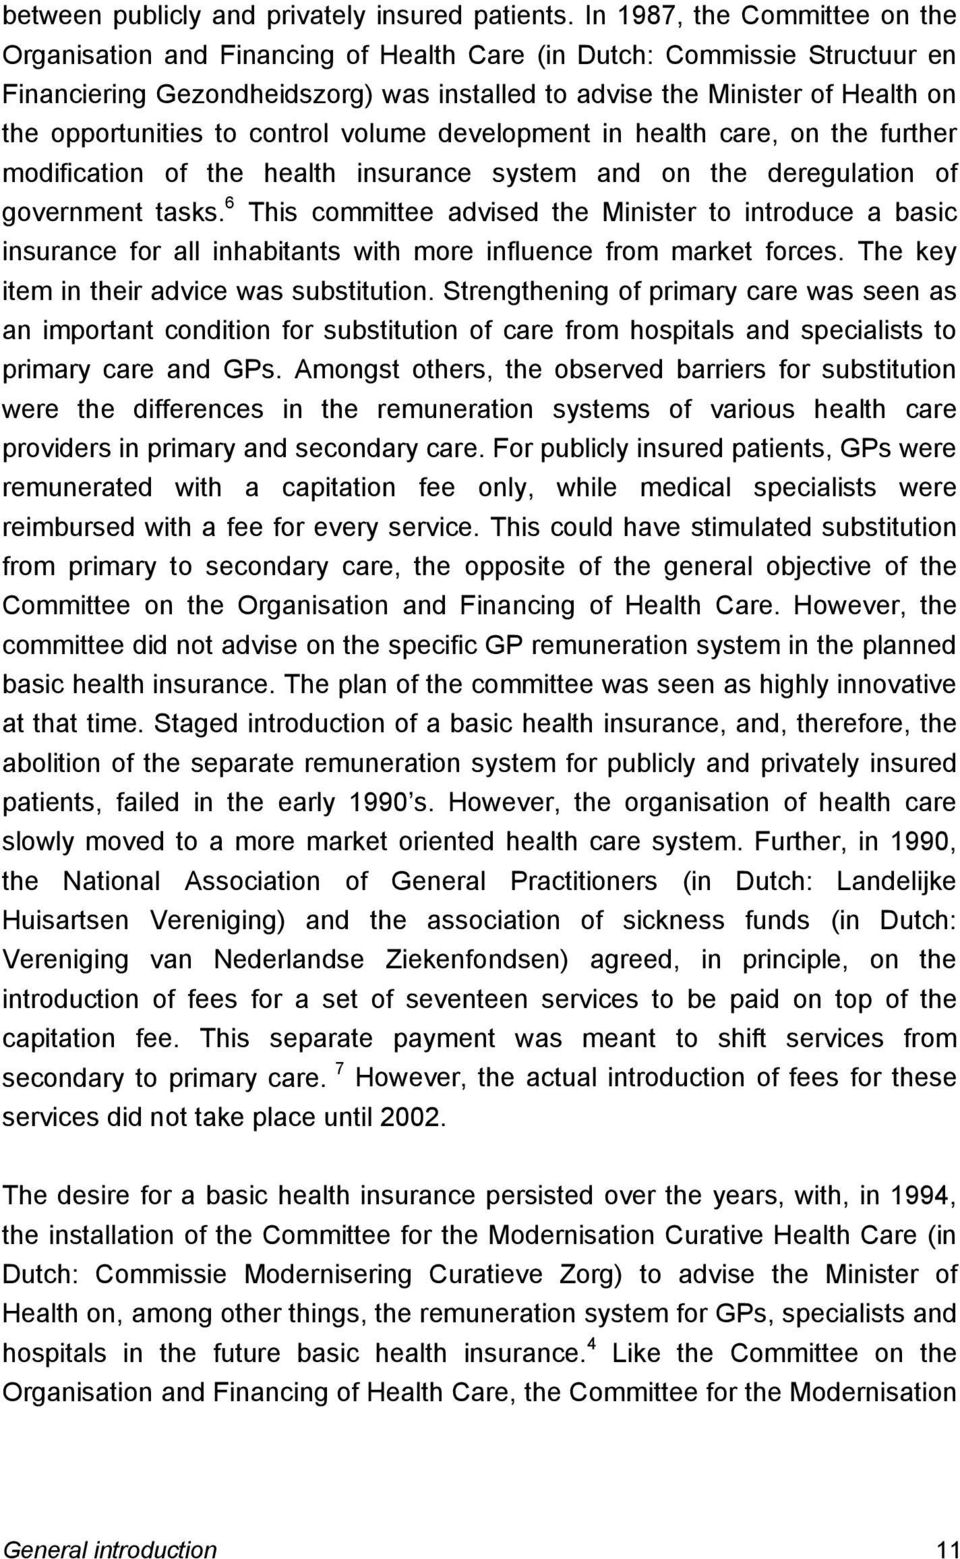 opportunities to control volume development in health care, on the further modification of the health insurance system and on the deregulation of government tasks.